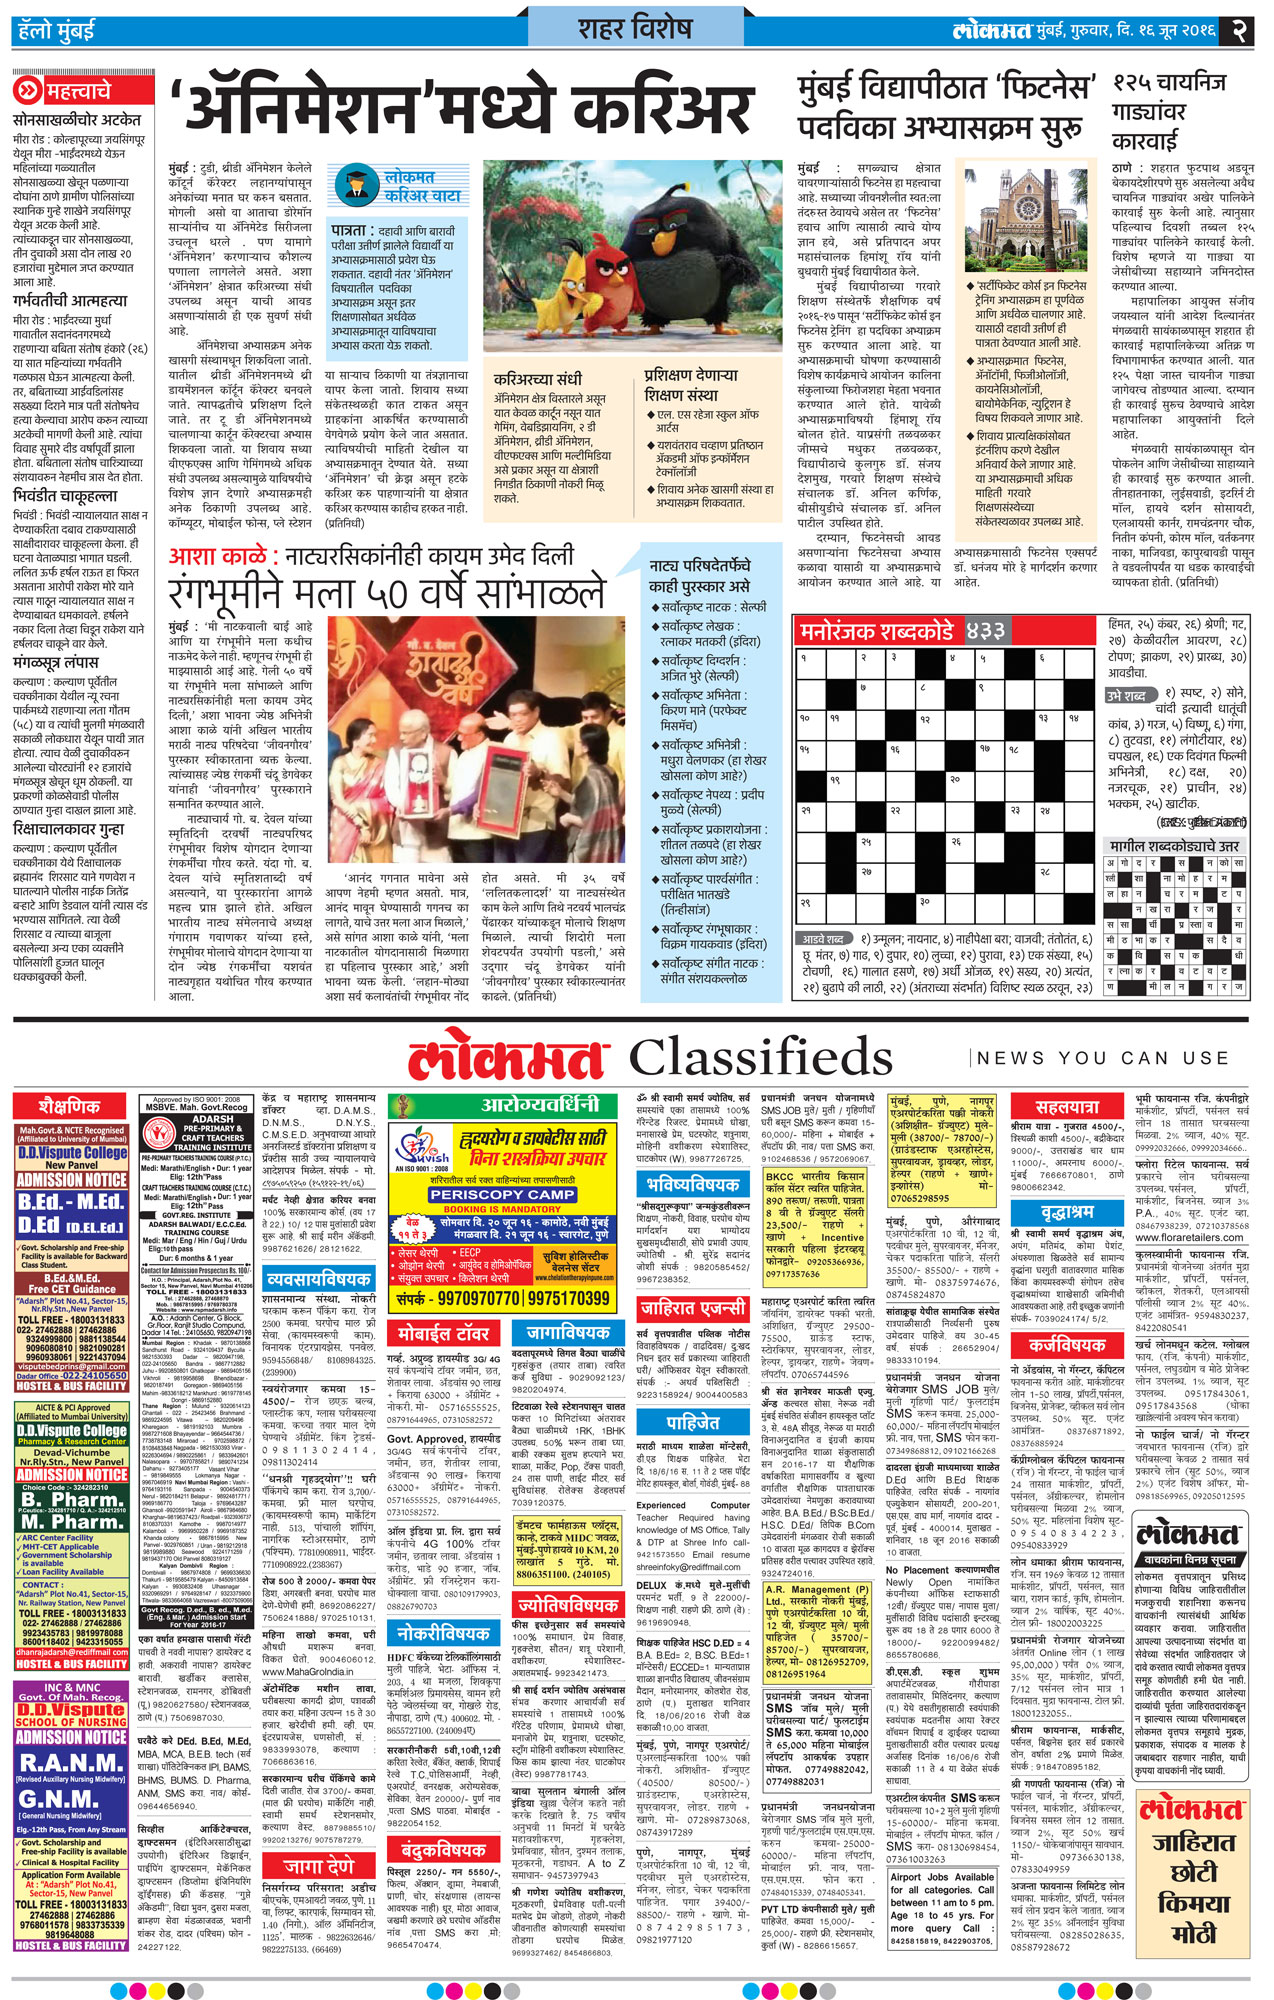 Lokmat Classified Ad Rates